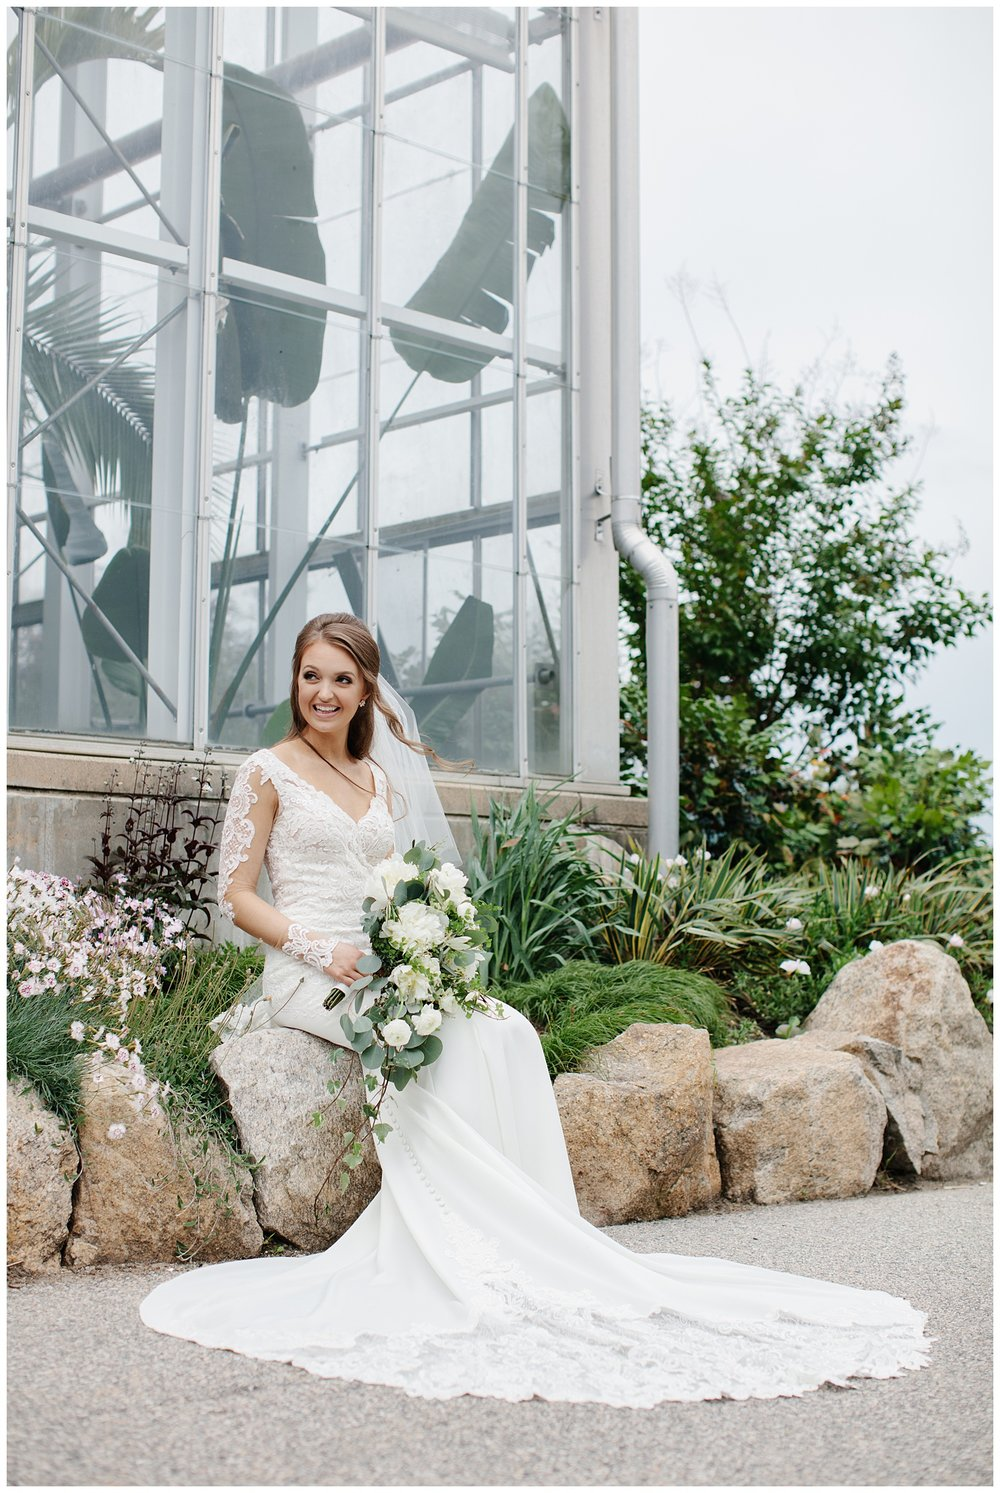 Tyler + Brynn + Botanical Gardens + Roger Williams + Rhode Island + Wedding_0096.jpg